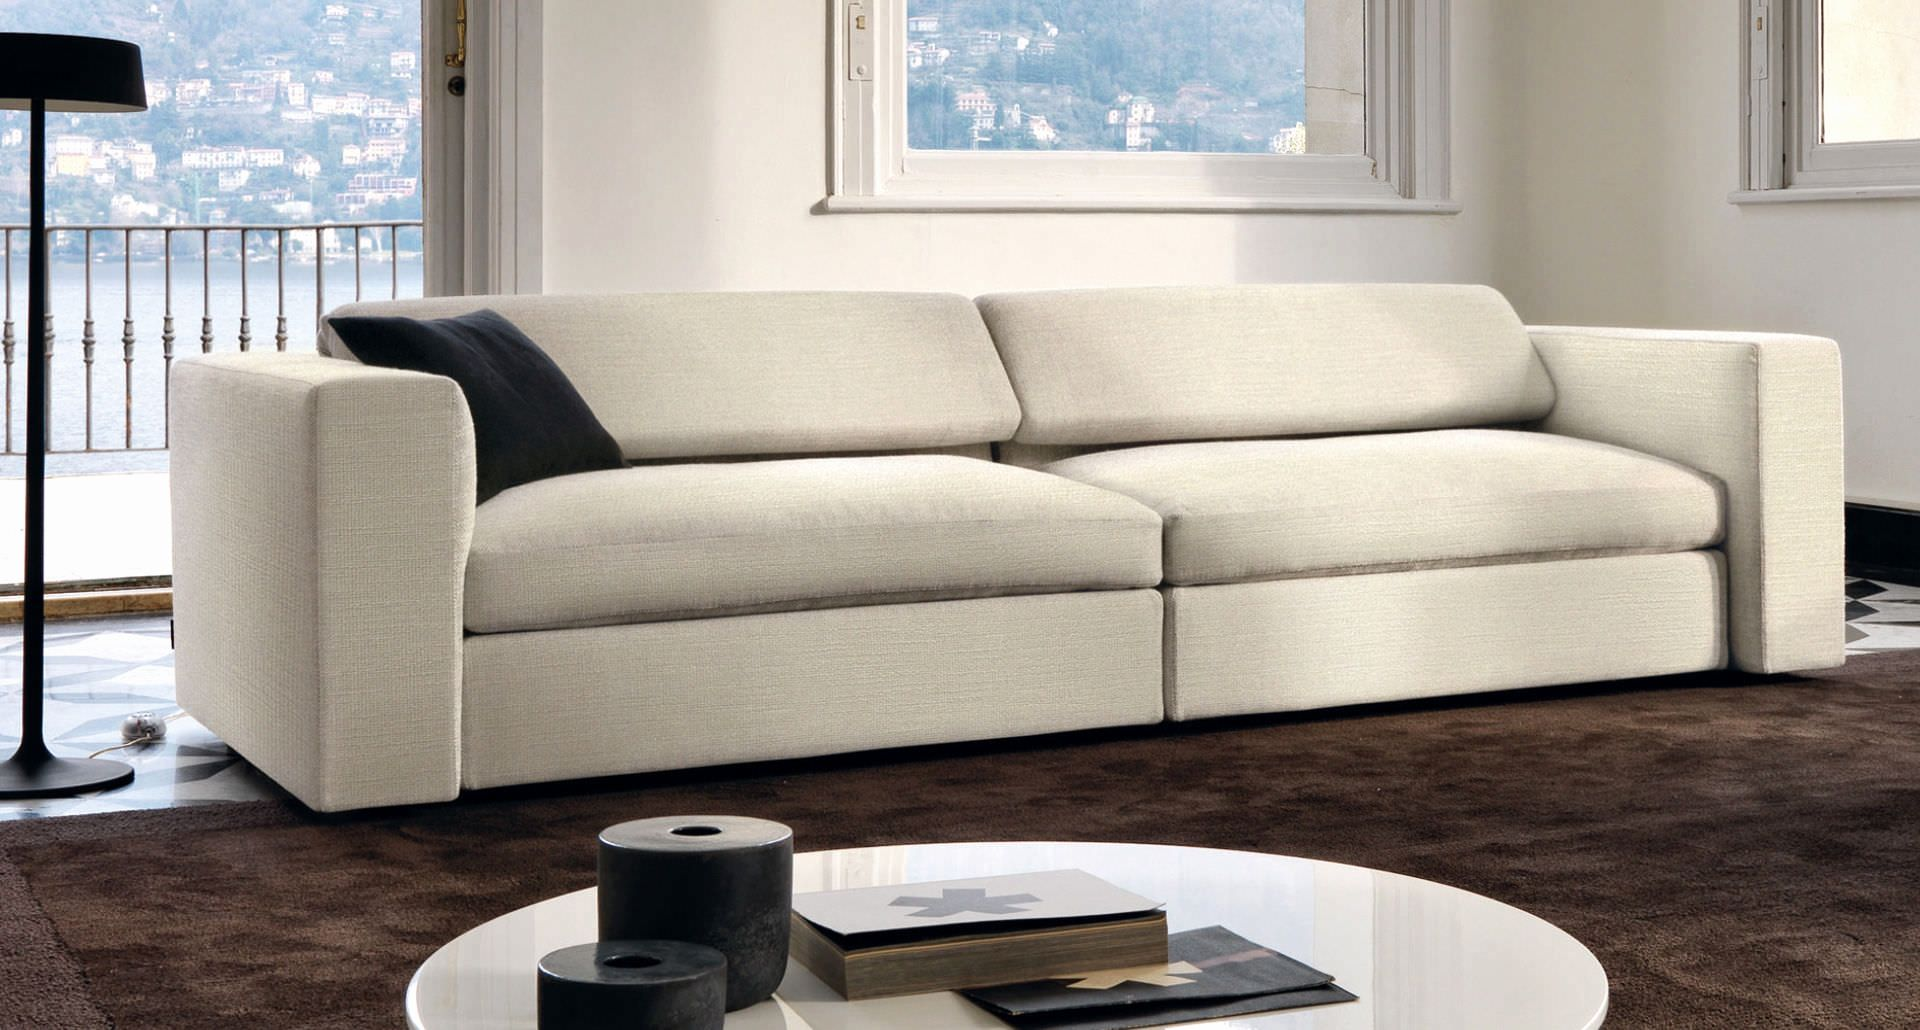 Lovely Contemporary Sofas Image Contemporary Sofas Beautiful Furniture Dazzli Leather Living Room Furniture Modern Leather Living Room Furniture Reclining Sofa